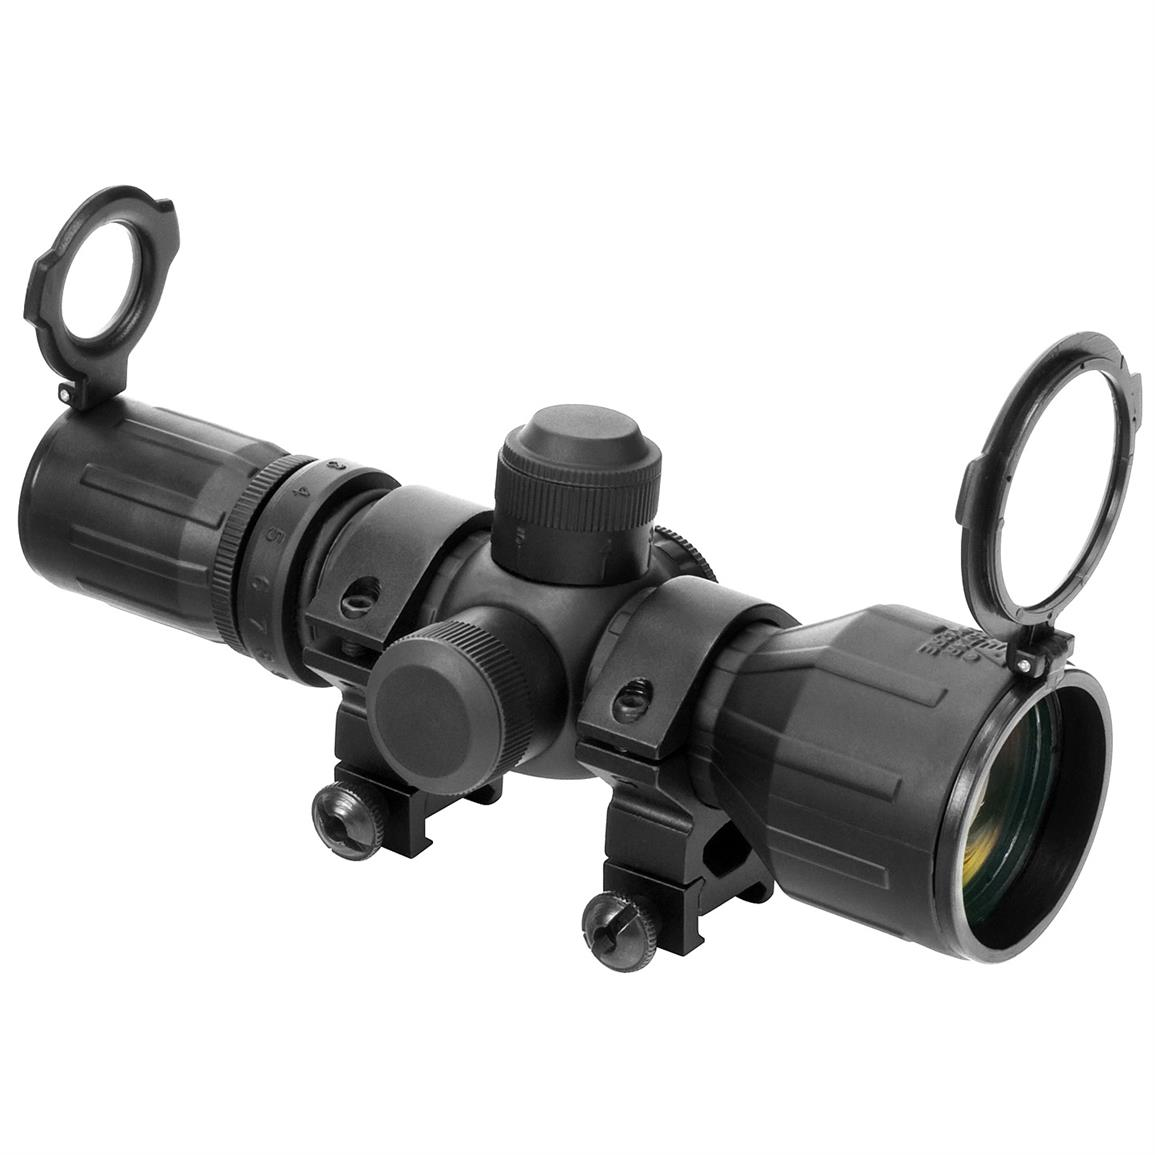 NcSTAR 3-9x42E Rubber Armored Compact Series Scope